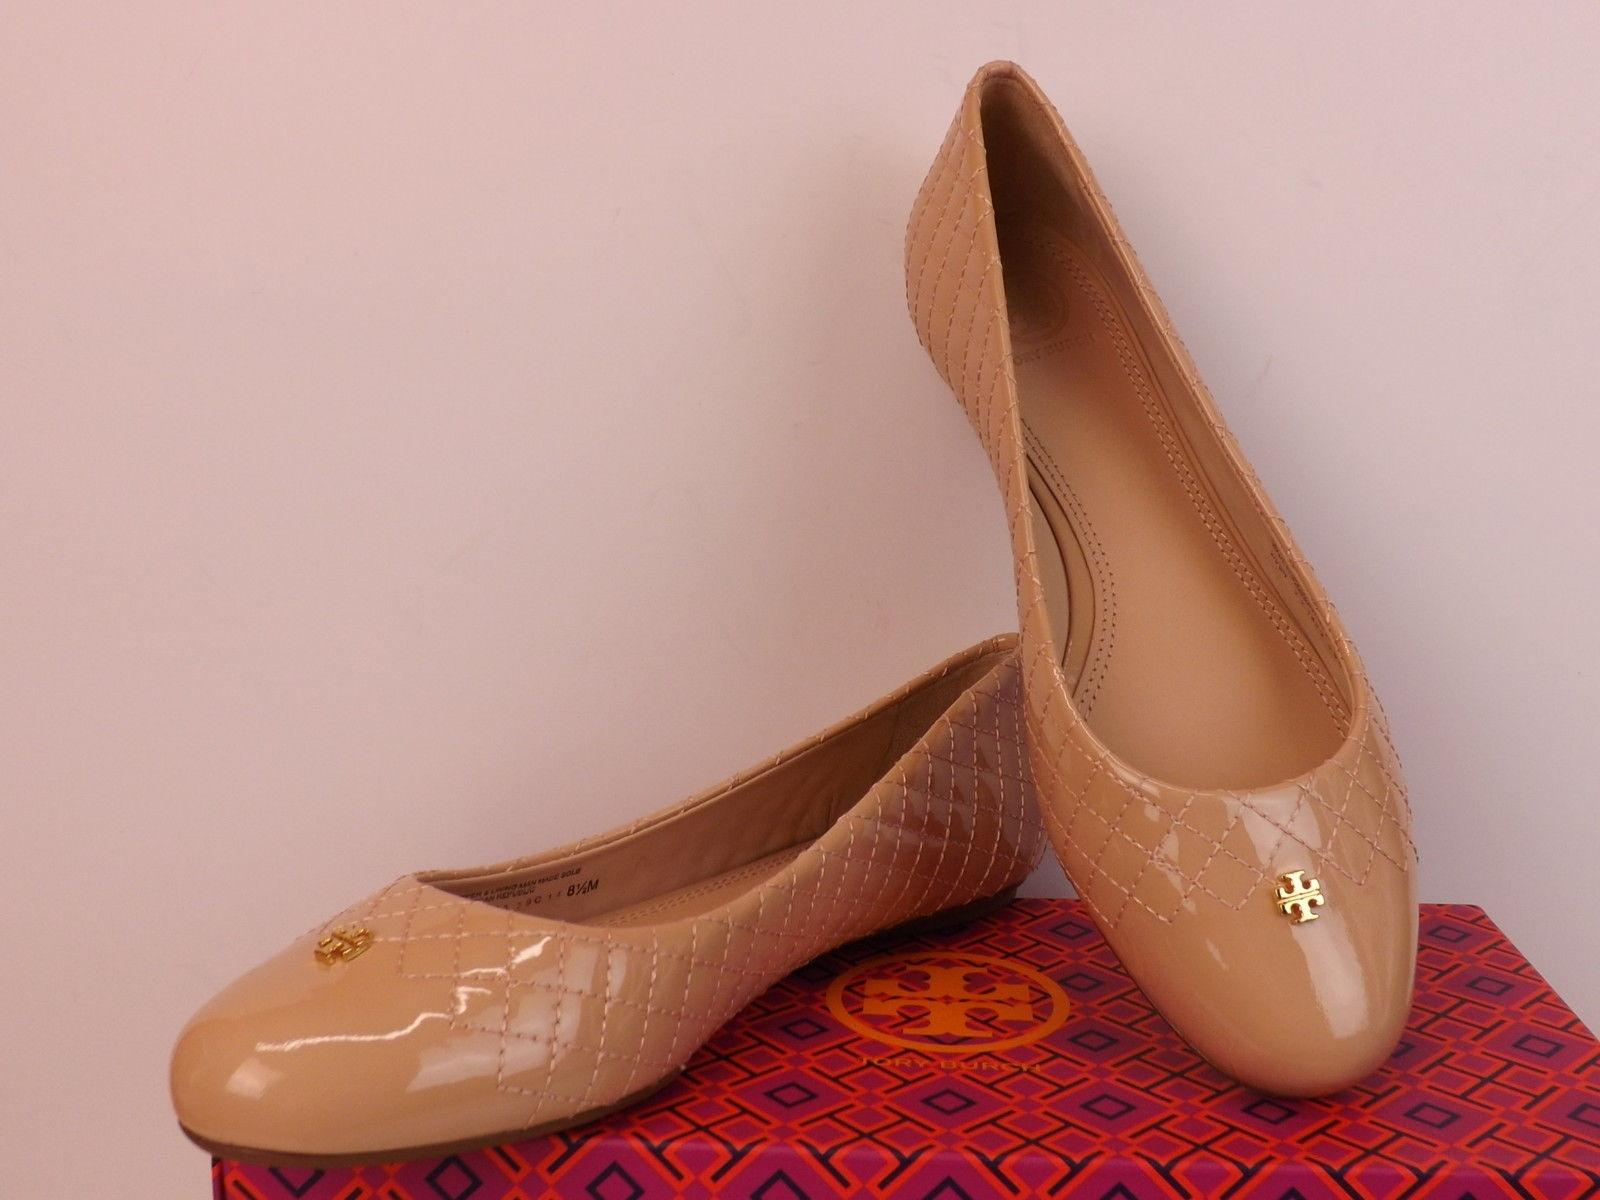 Tory Burch Light Oak Kent Quilted Patent Leather Gold Reva 8 Flats Size EU  38 (Approx. US 8) Regular (M, B) - Tradesy